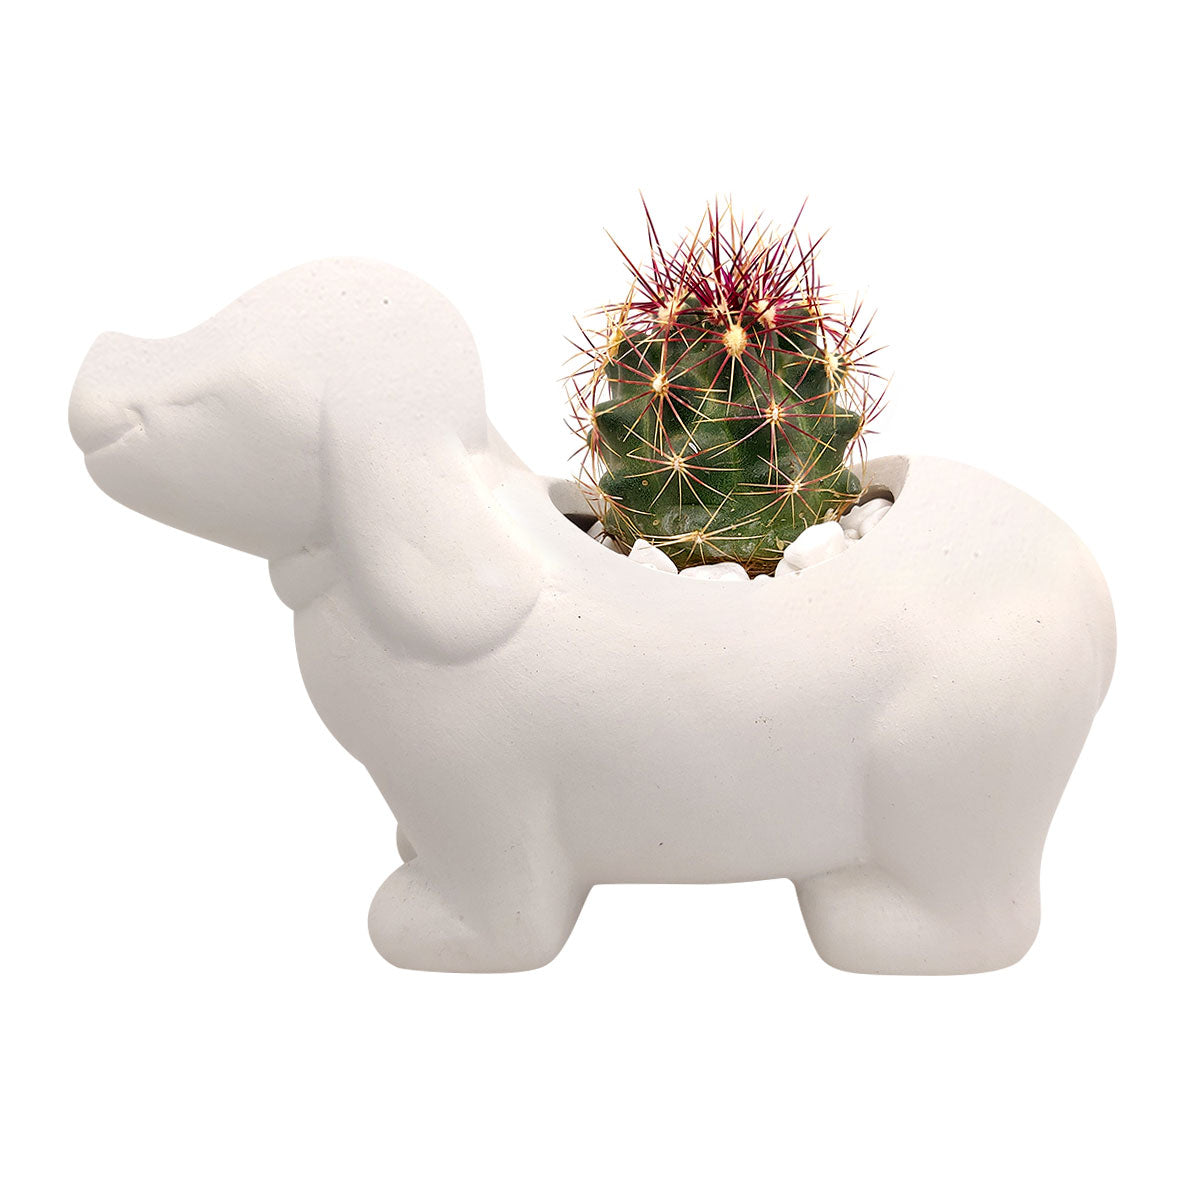 DIY Ceramic Puppy Pot for sale, Cute White Ceramic Succulent Pot, Little Dog Planter Decor, Craft Supplies, DIY Succulent Gift Ideas, Dog Shaped Succulent Pot